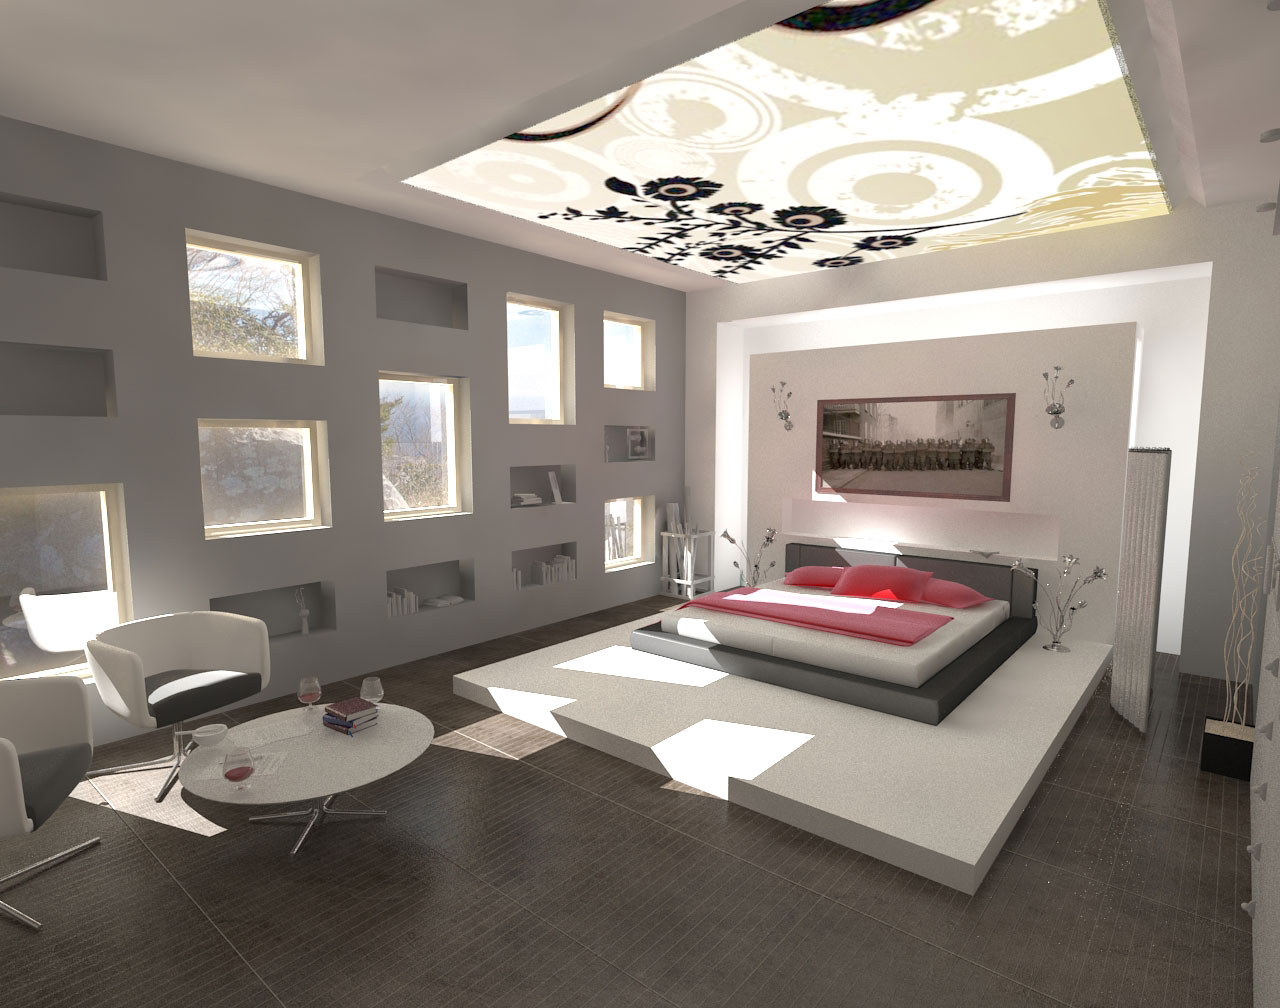 What does your dream bedroom